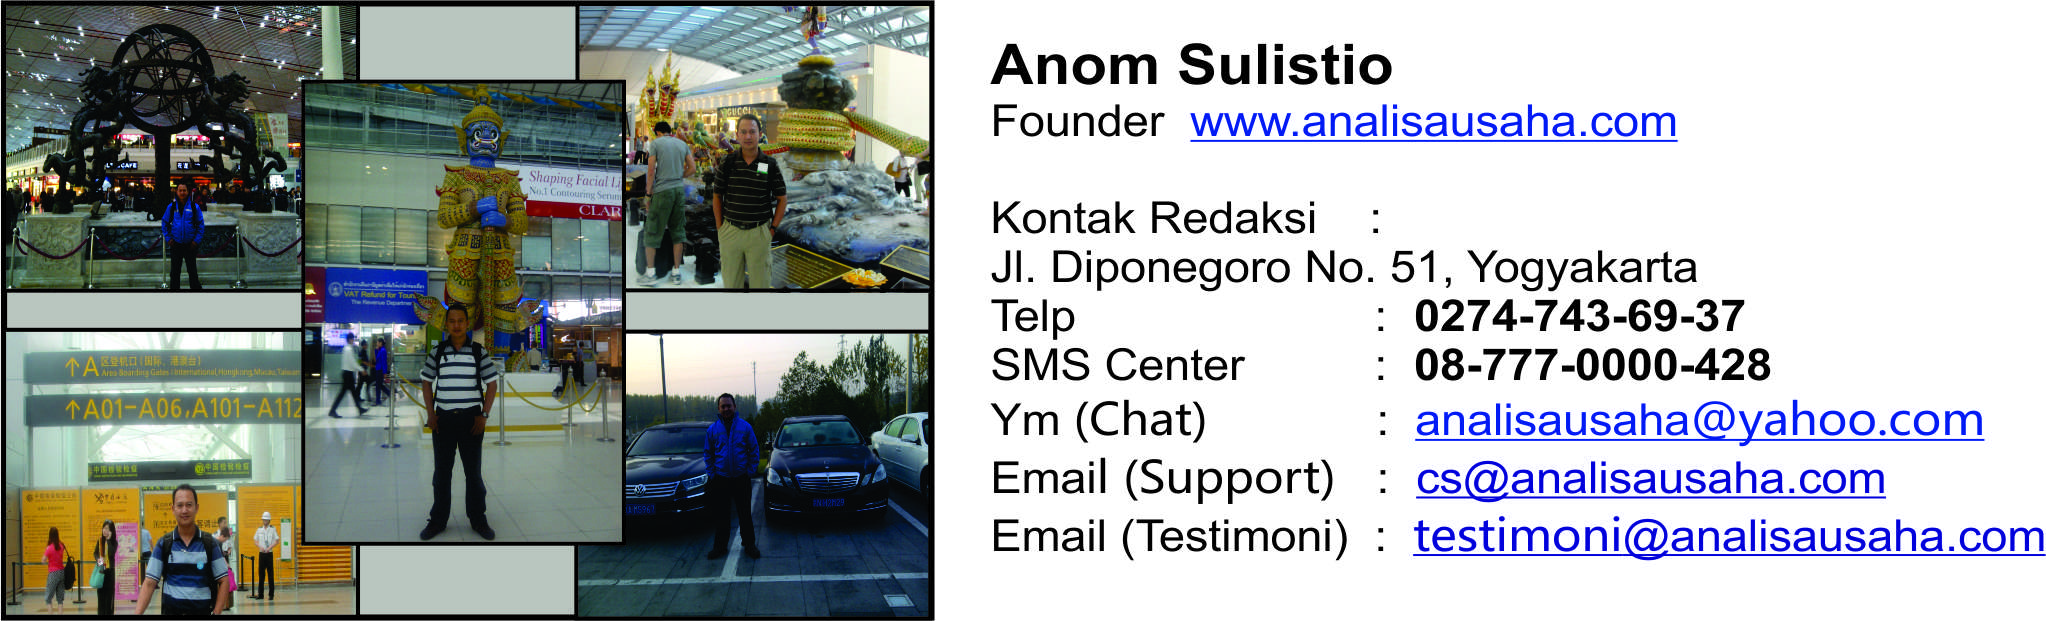 Profile Anom 3 Analisa Usaha Distro